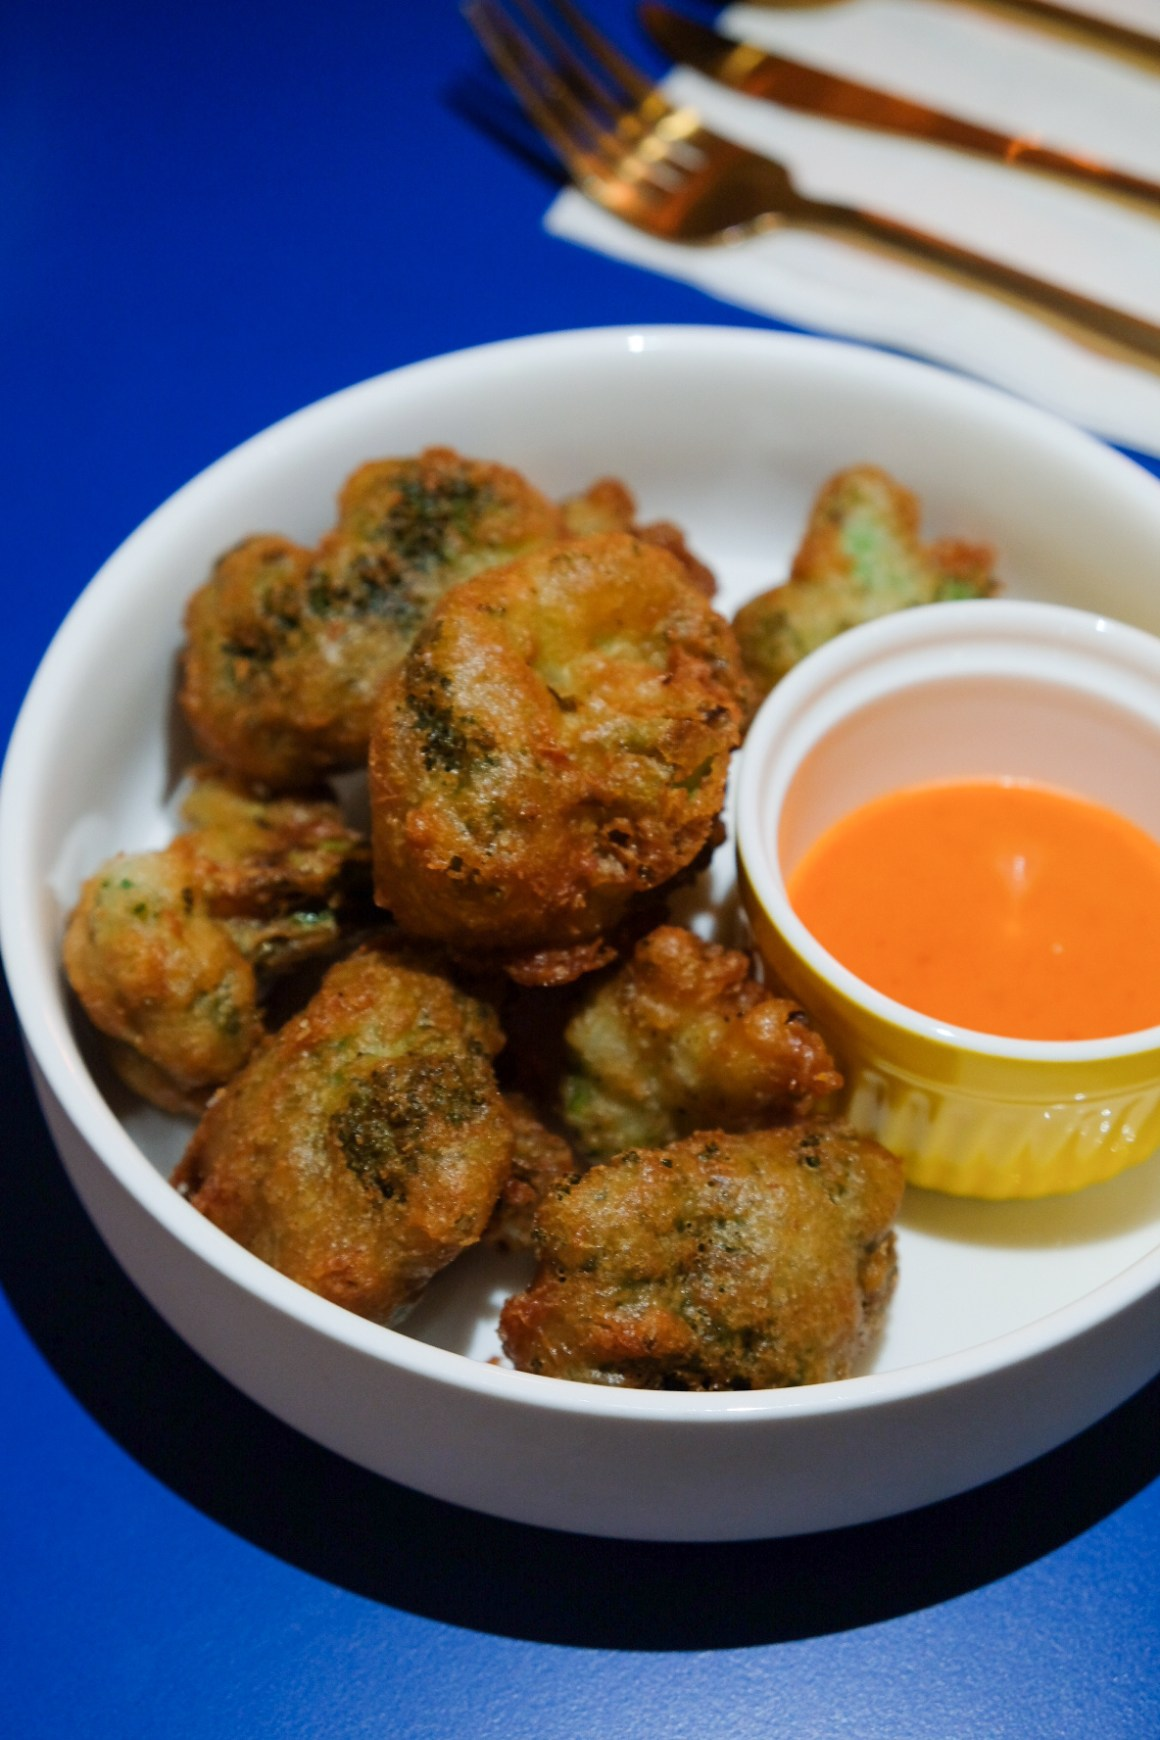 The Garden Club Serving Healthy Food At Downtown Gallery - Broccoli Tempura with Gochujang Mayo